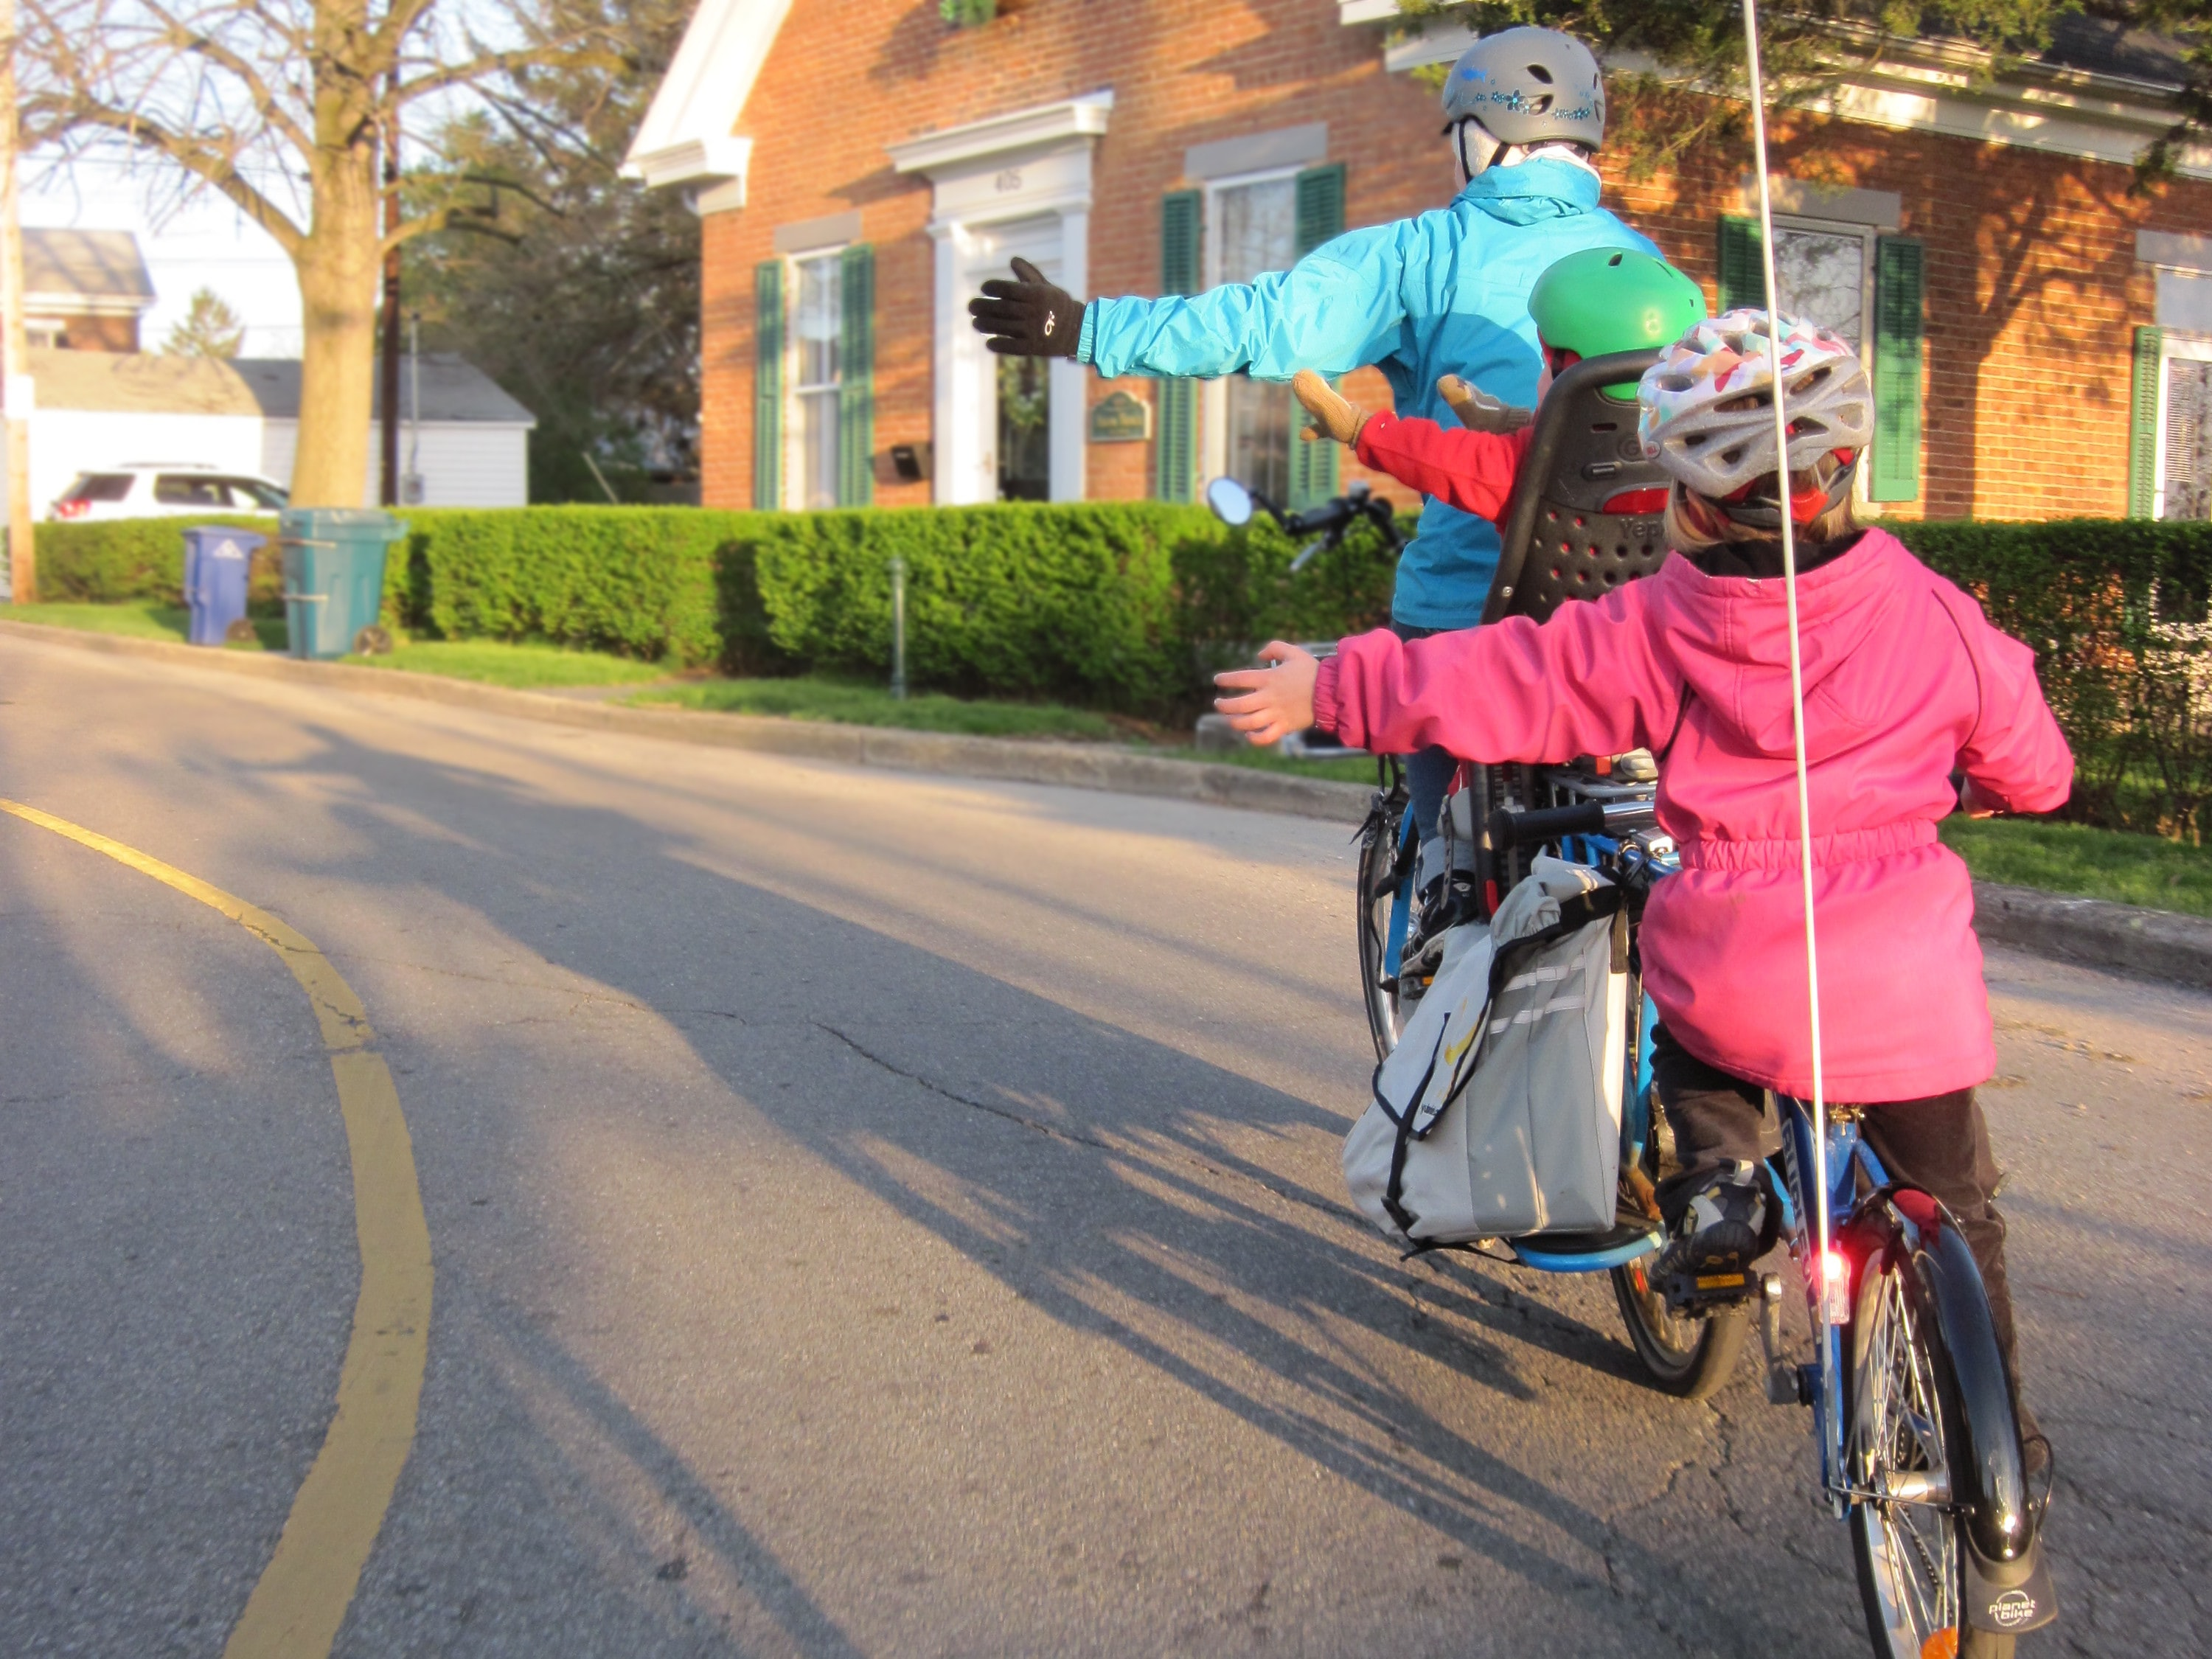 Parent and children riding bicycles near house